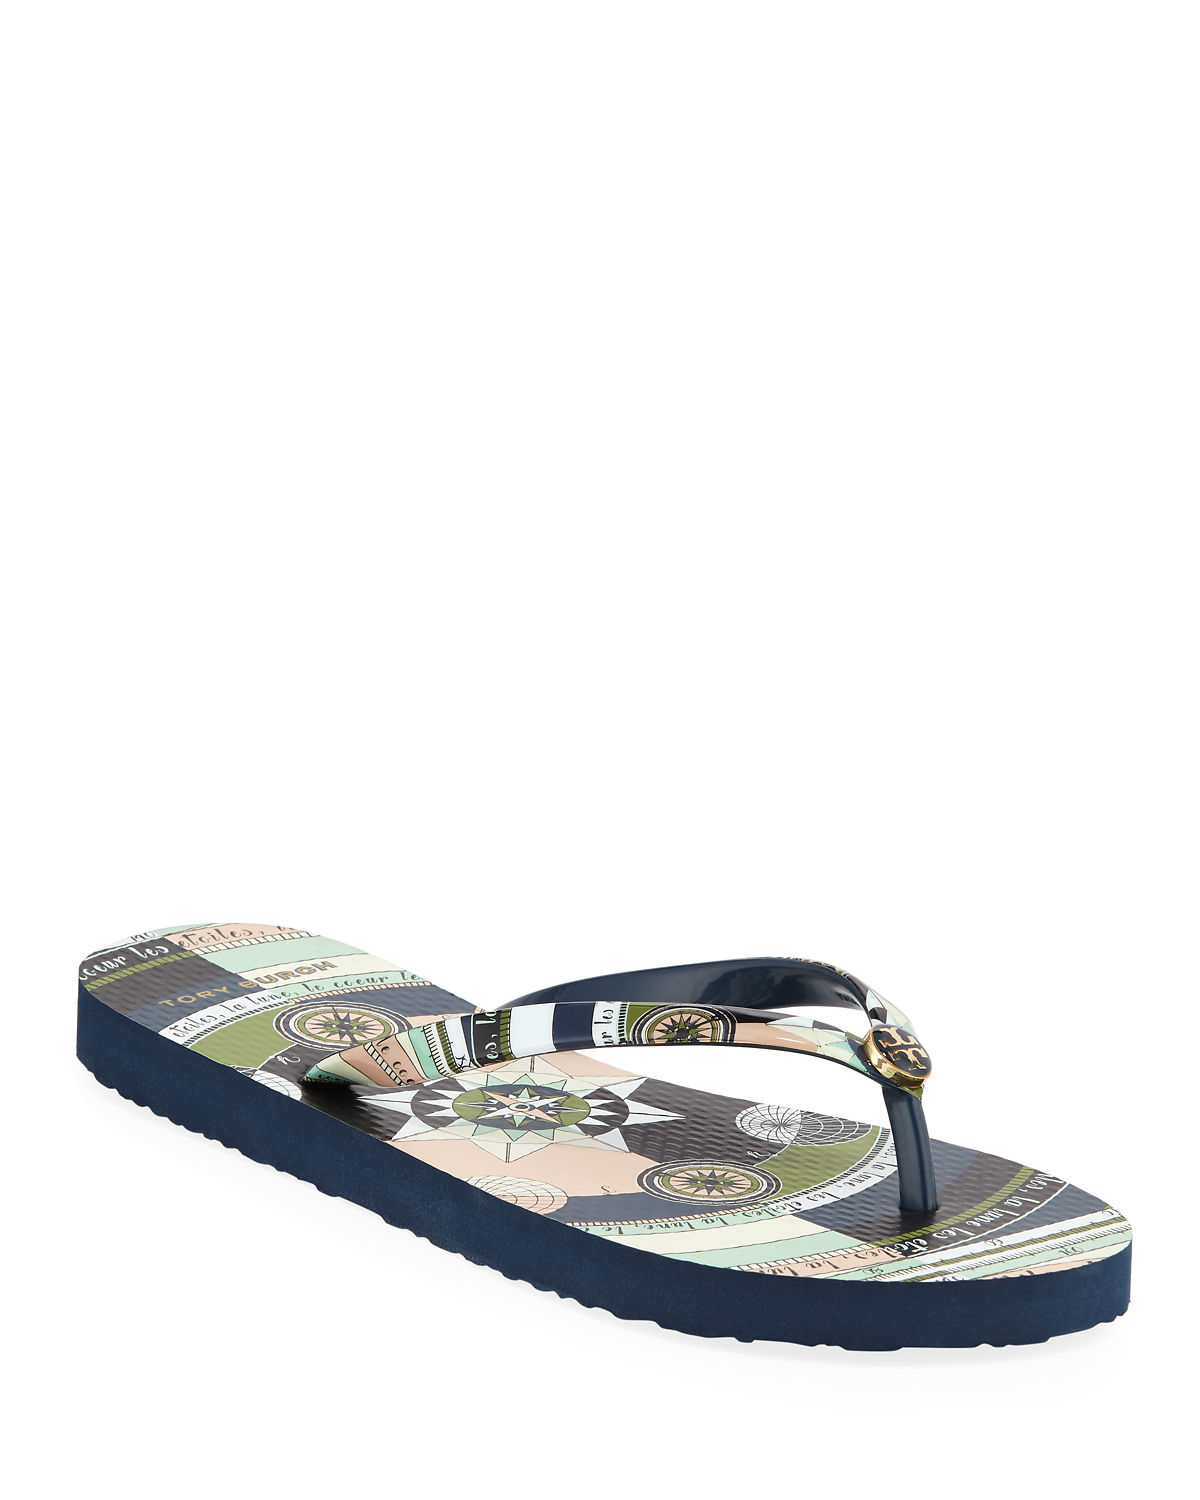 e568937f2054dc Tory Burch Printed Flip-Flop Sandals